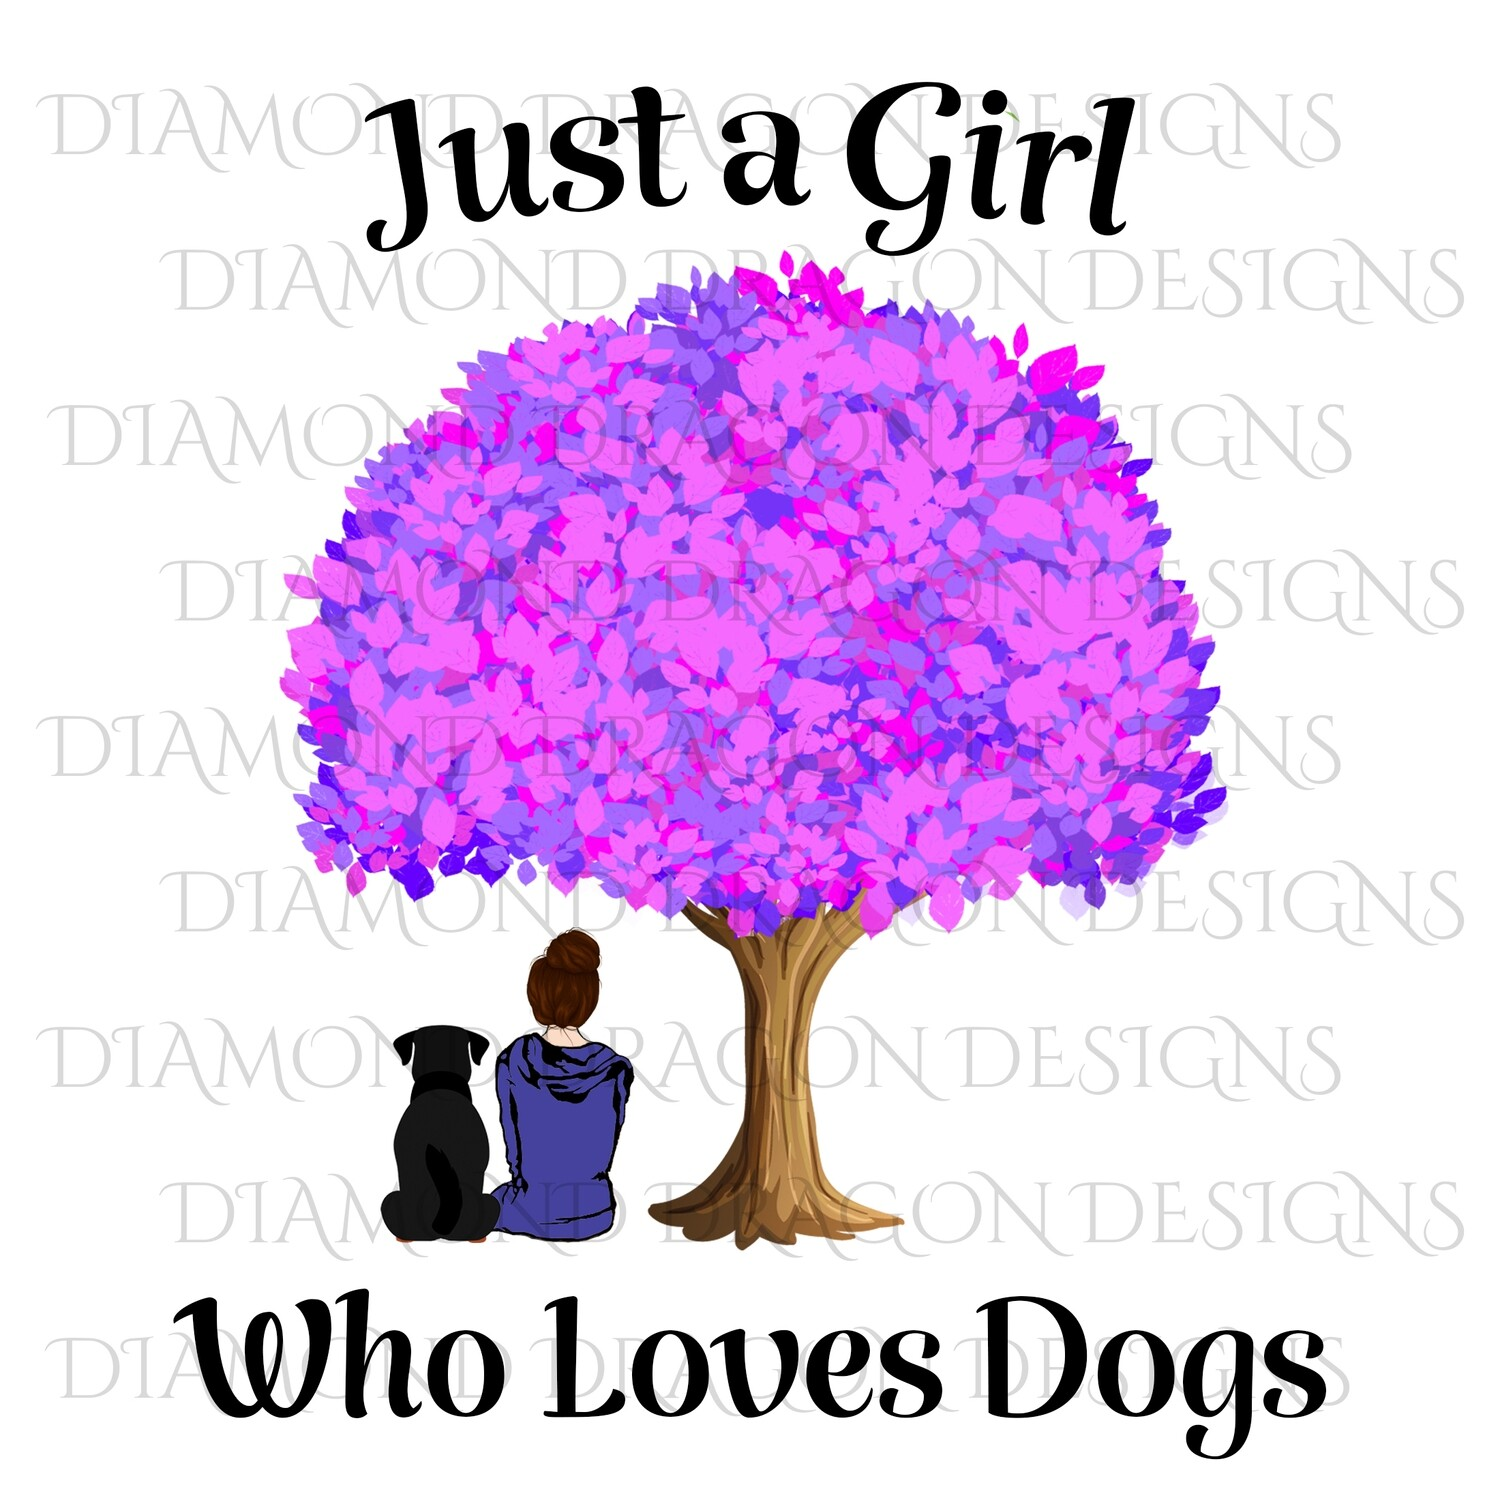 Dogs - Just a Girl Who Loves Dogs, Girl & Dog Under Tree, Girls Best Friend, Woman and Dog Under Tree, Digital Image